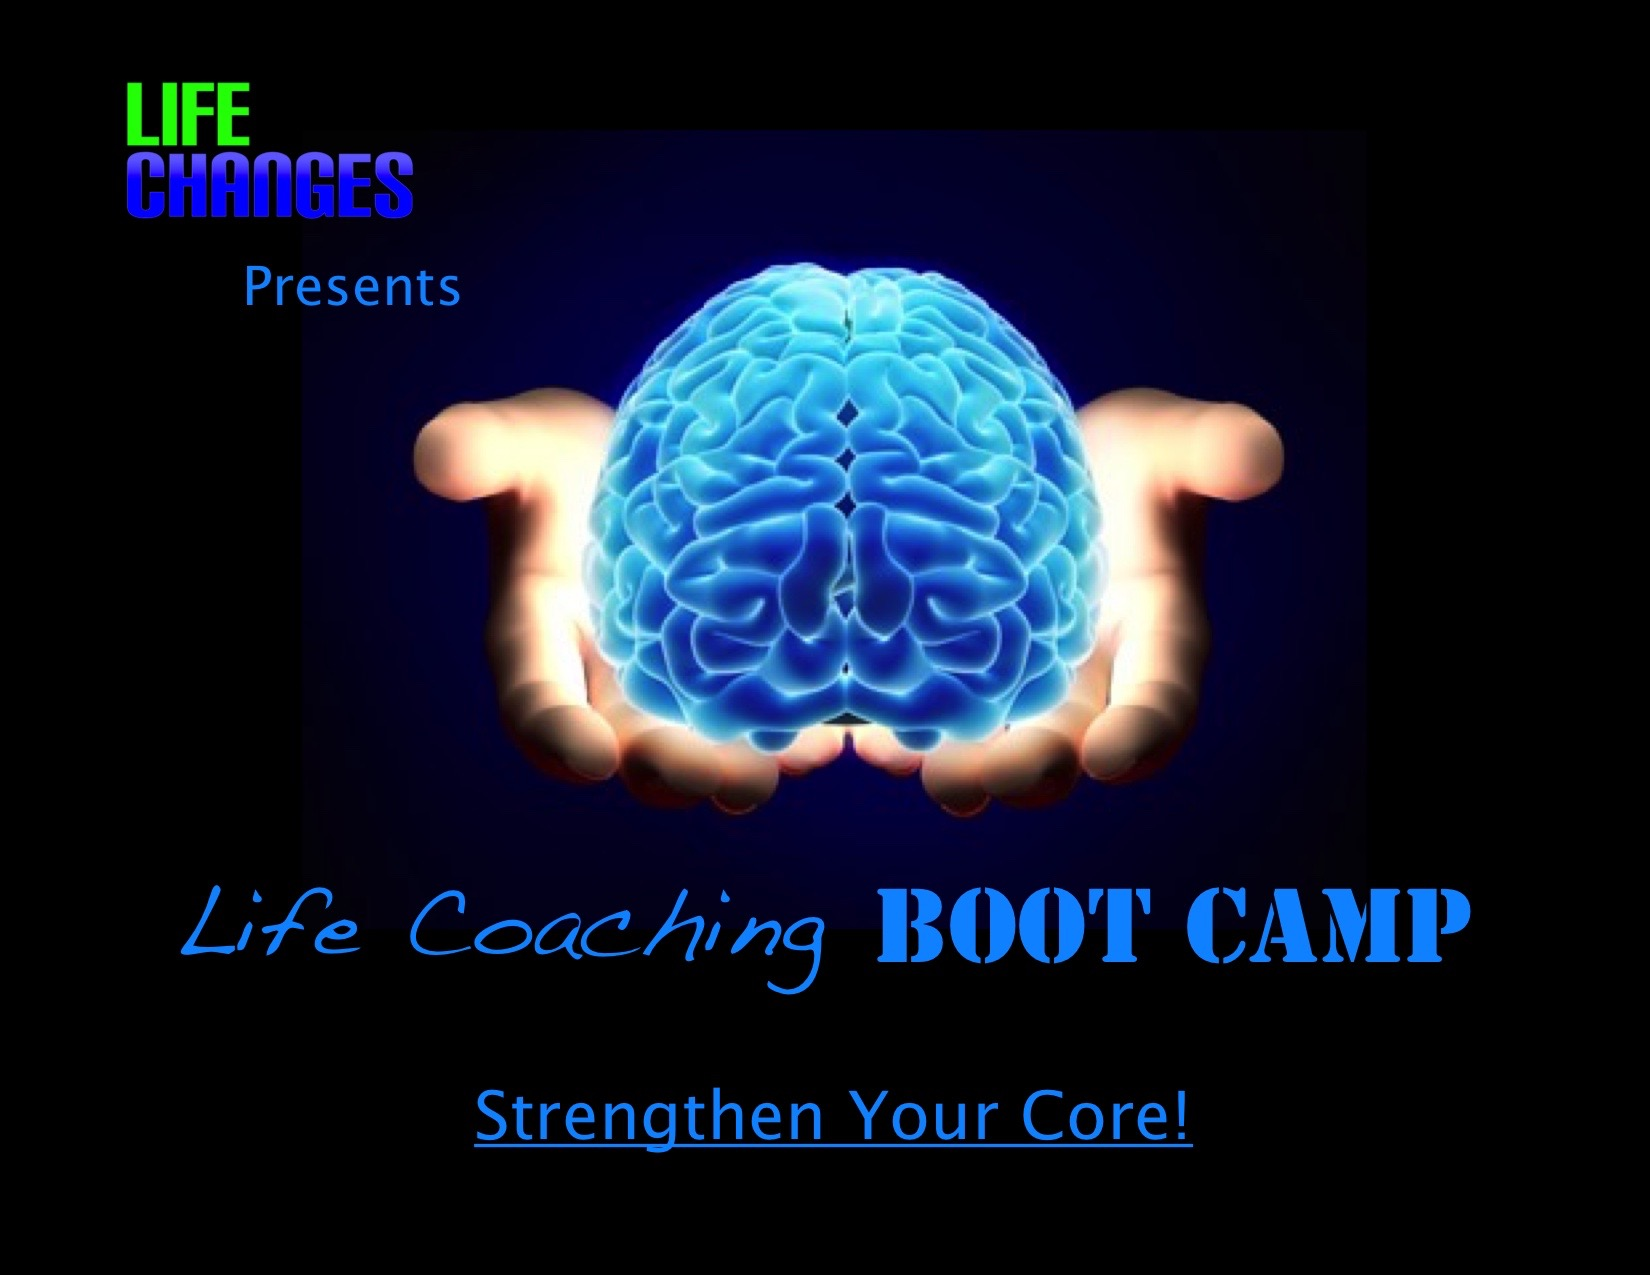 October 8, 2015 Life Coaching Boot Camp Six Week Men's Group Workshop